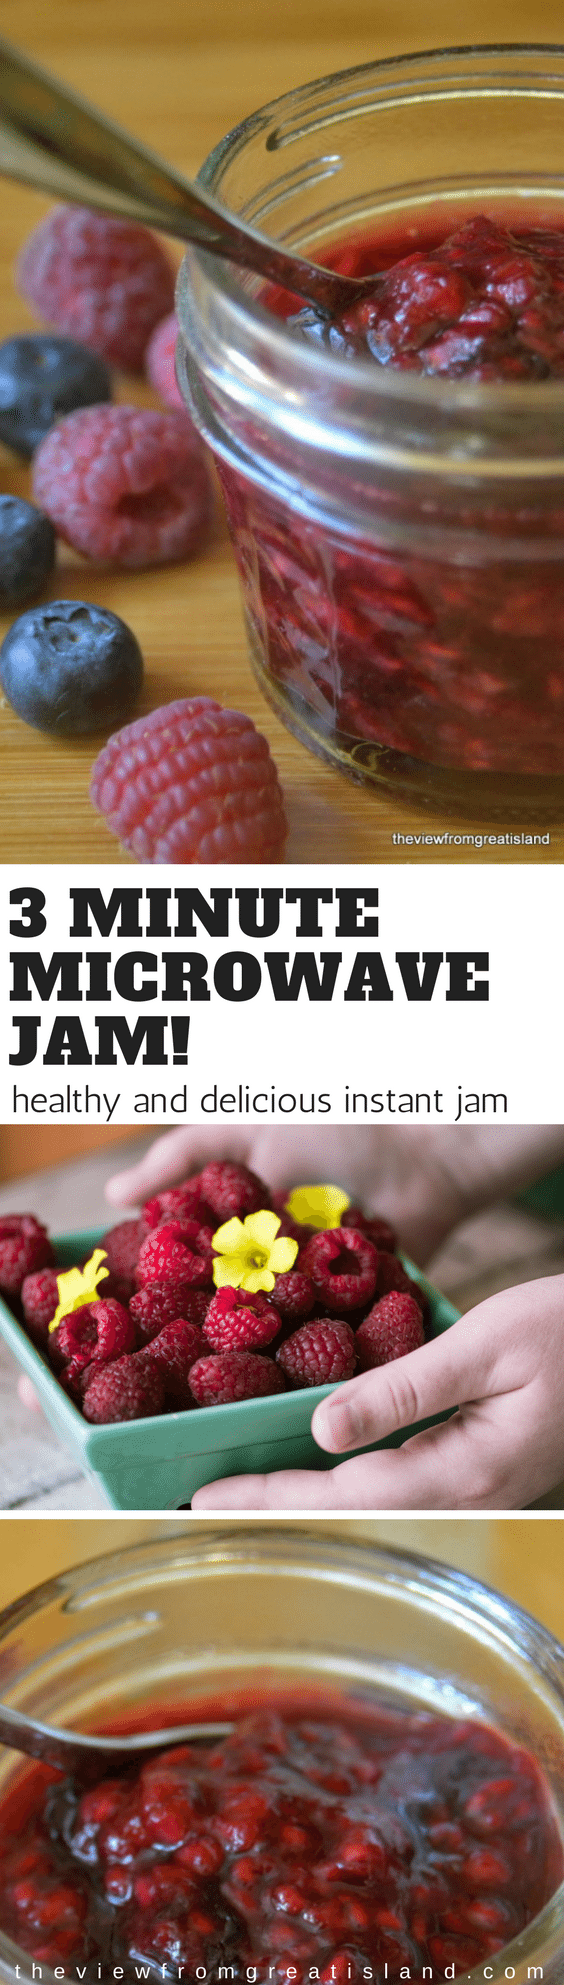 3-Minute No Sugar Microwave Jam ~ this amazingly fresh and vibrant jam is made in just minutes in the microwave, without any of the muss and fuss associated with traditional jam making ~ score! #jam #berries #microwavejam #preserves #smallbatchjam #freezerjam #refrigeratorjam #raspberryjam #strawberryjam #easyjam #nosugar #sugarfree